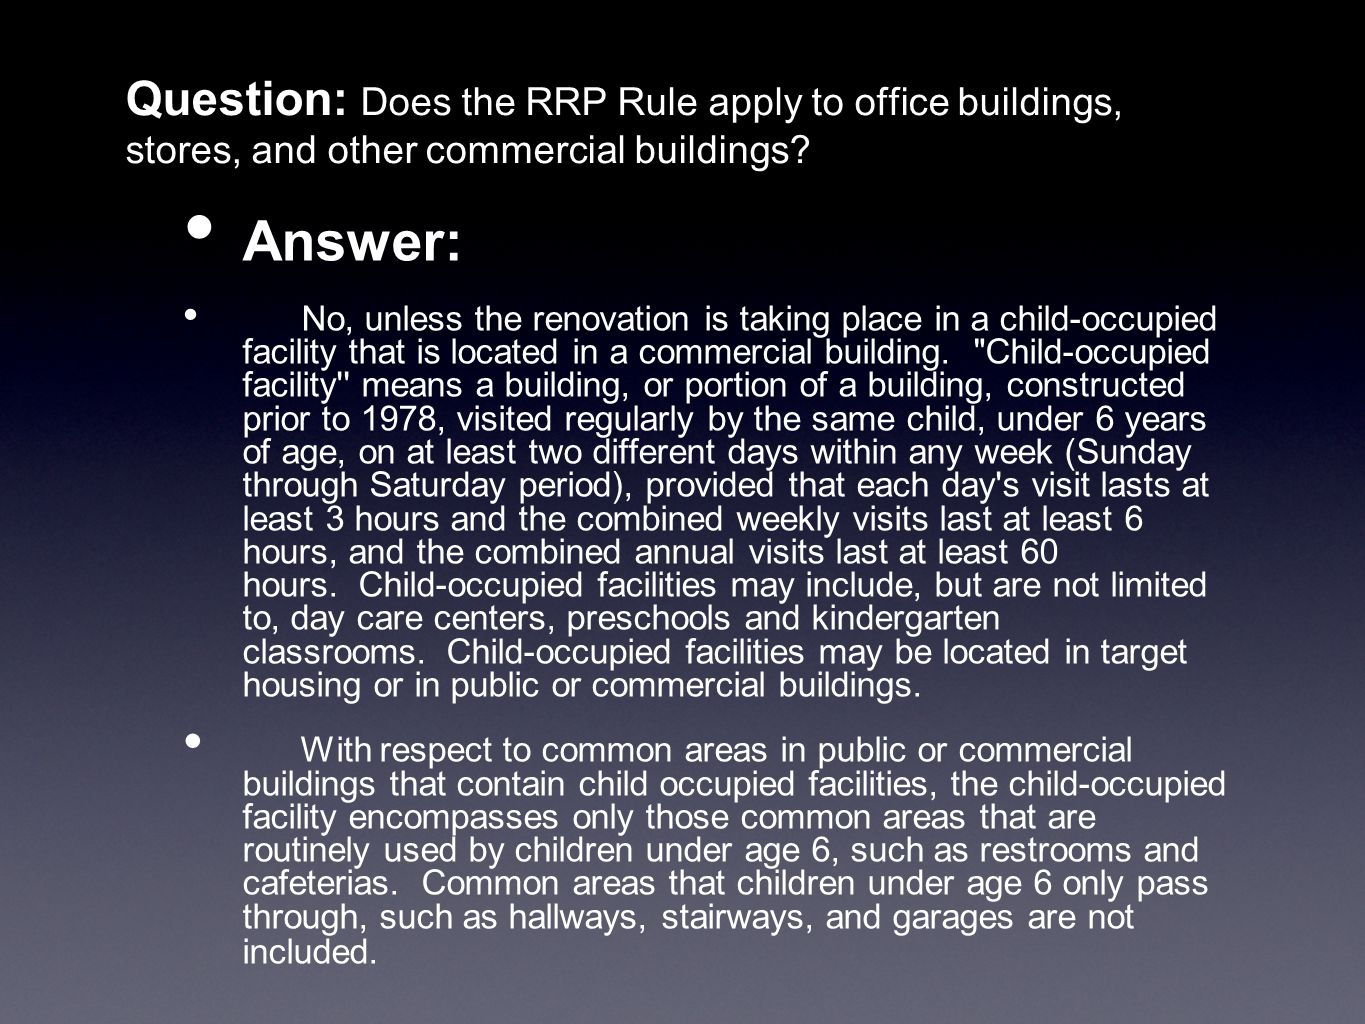 Question: Does the RRP Rule apply to office buildings, stores, and other commercial buildings? Answer: No, unless the renovation is taking place in a